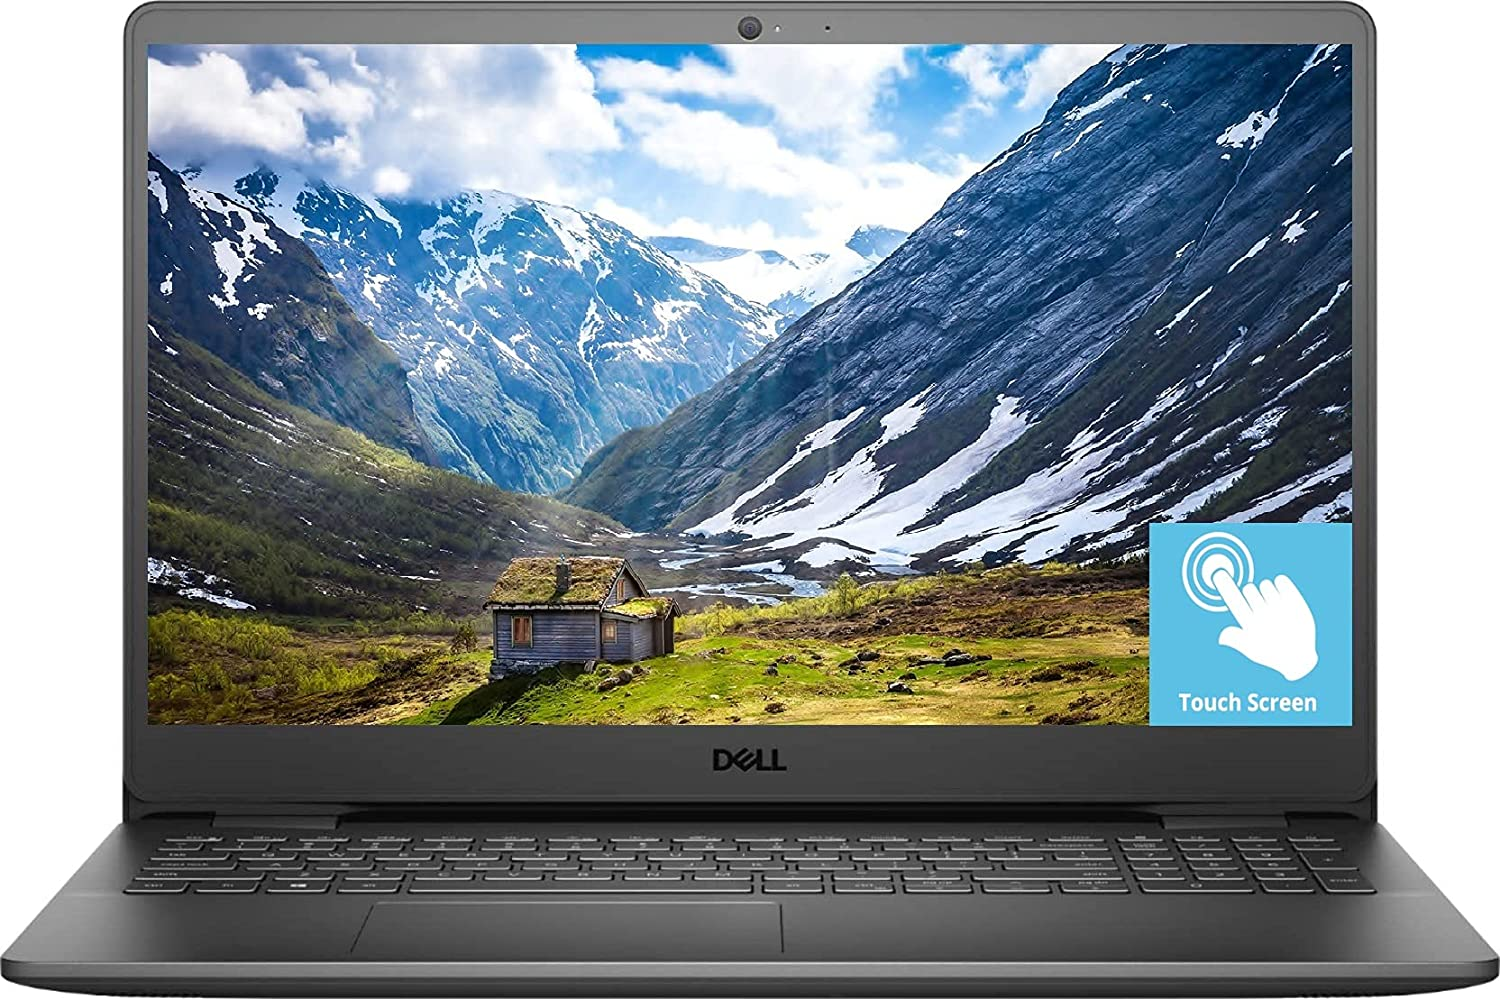 2021 Newest Dell Inspiron 3000 Laptop, 15.6 FHD Touch Display, Intel Core i5-1035G1, 16GB DDR4 RAM, 512GB PCIe SSD, Online Meeting Ready, Webcam, WiFi, HDMI, Bluetooth, Windows 10 Home, Black